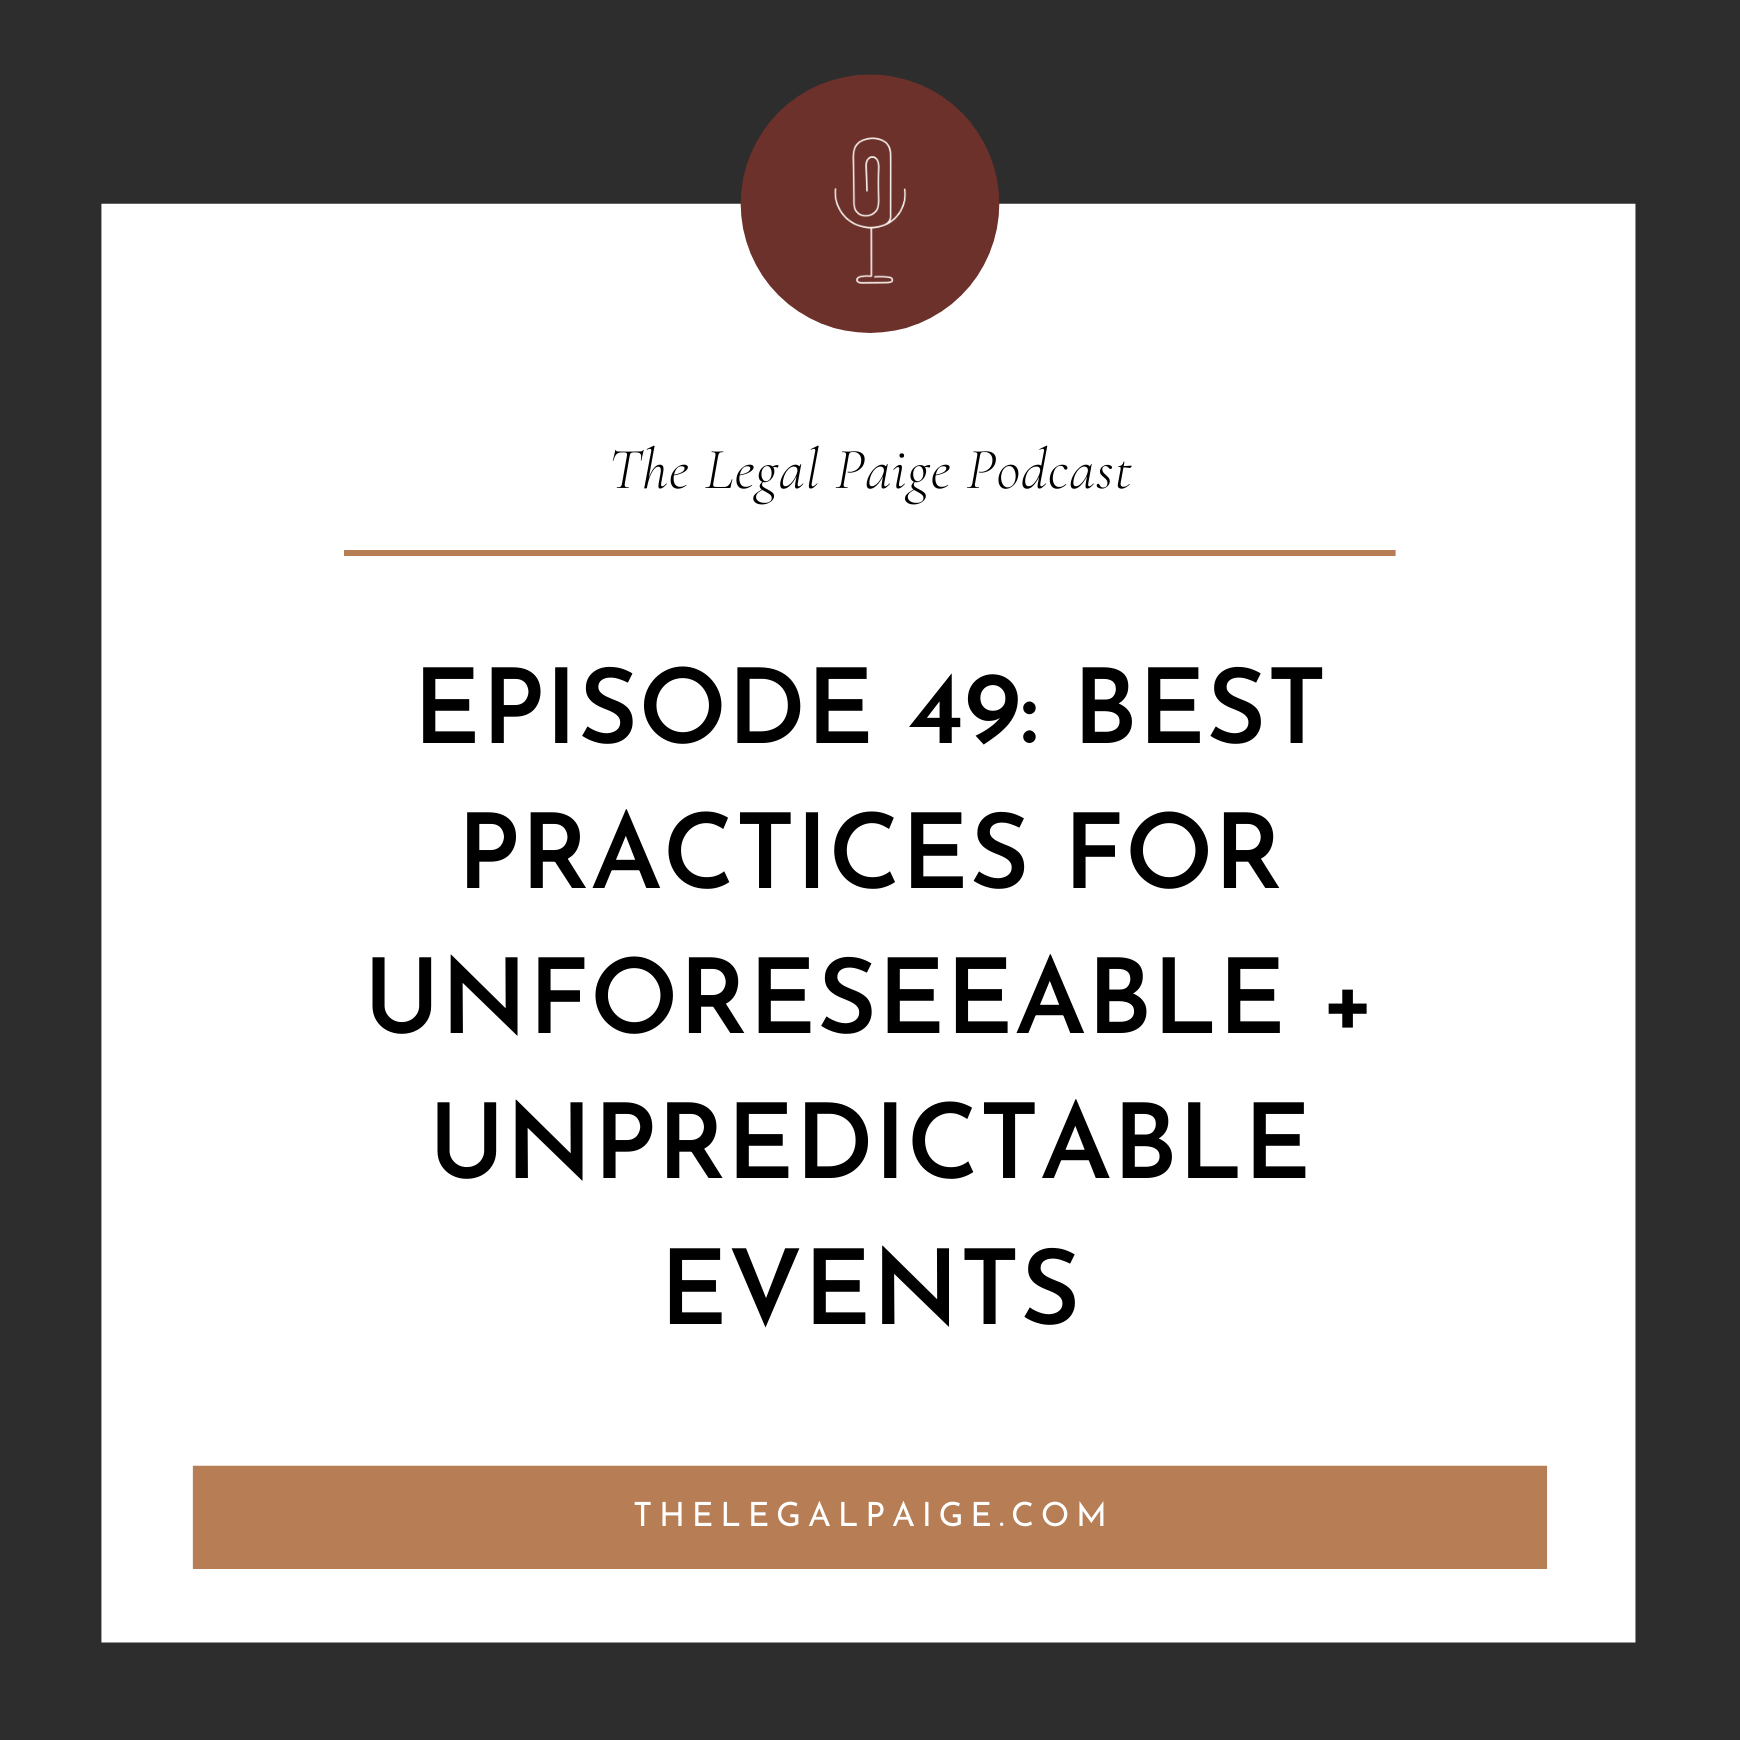 Ep 49: Best Practices for Unforeseeable, Unpredictable, and Impossible Events, and the Protection Clauses You NEED in Your Contracts